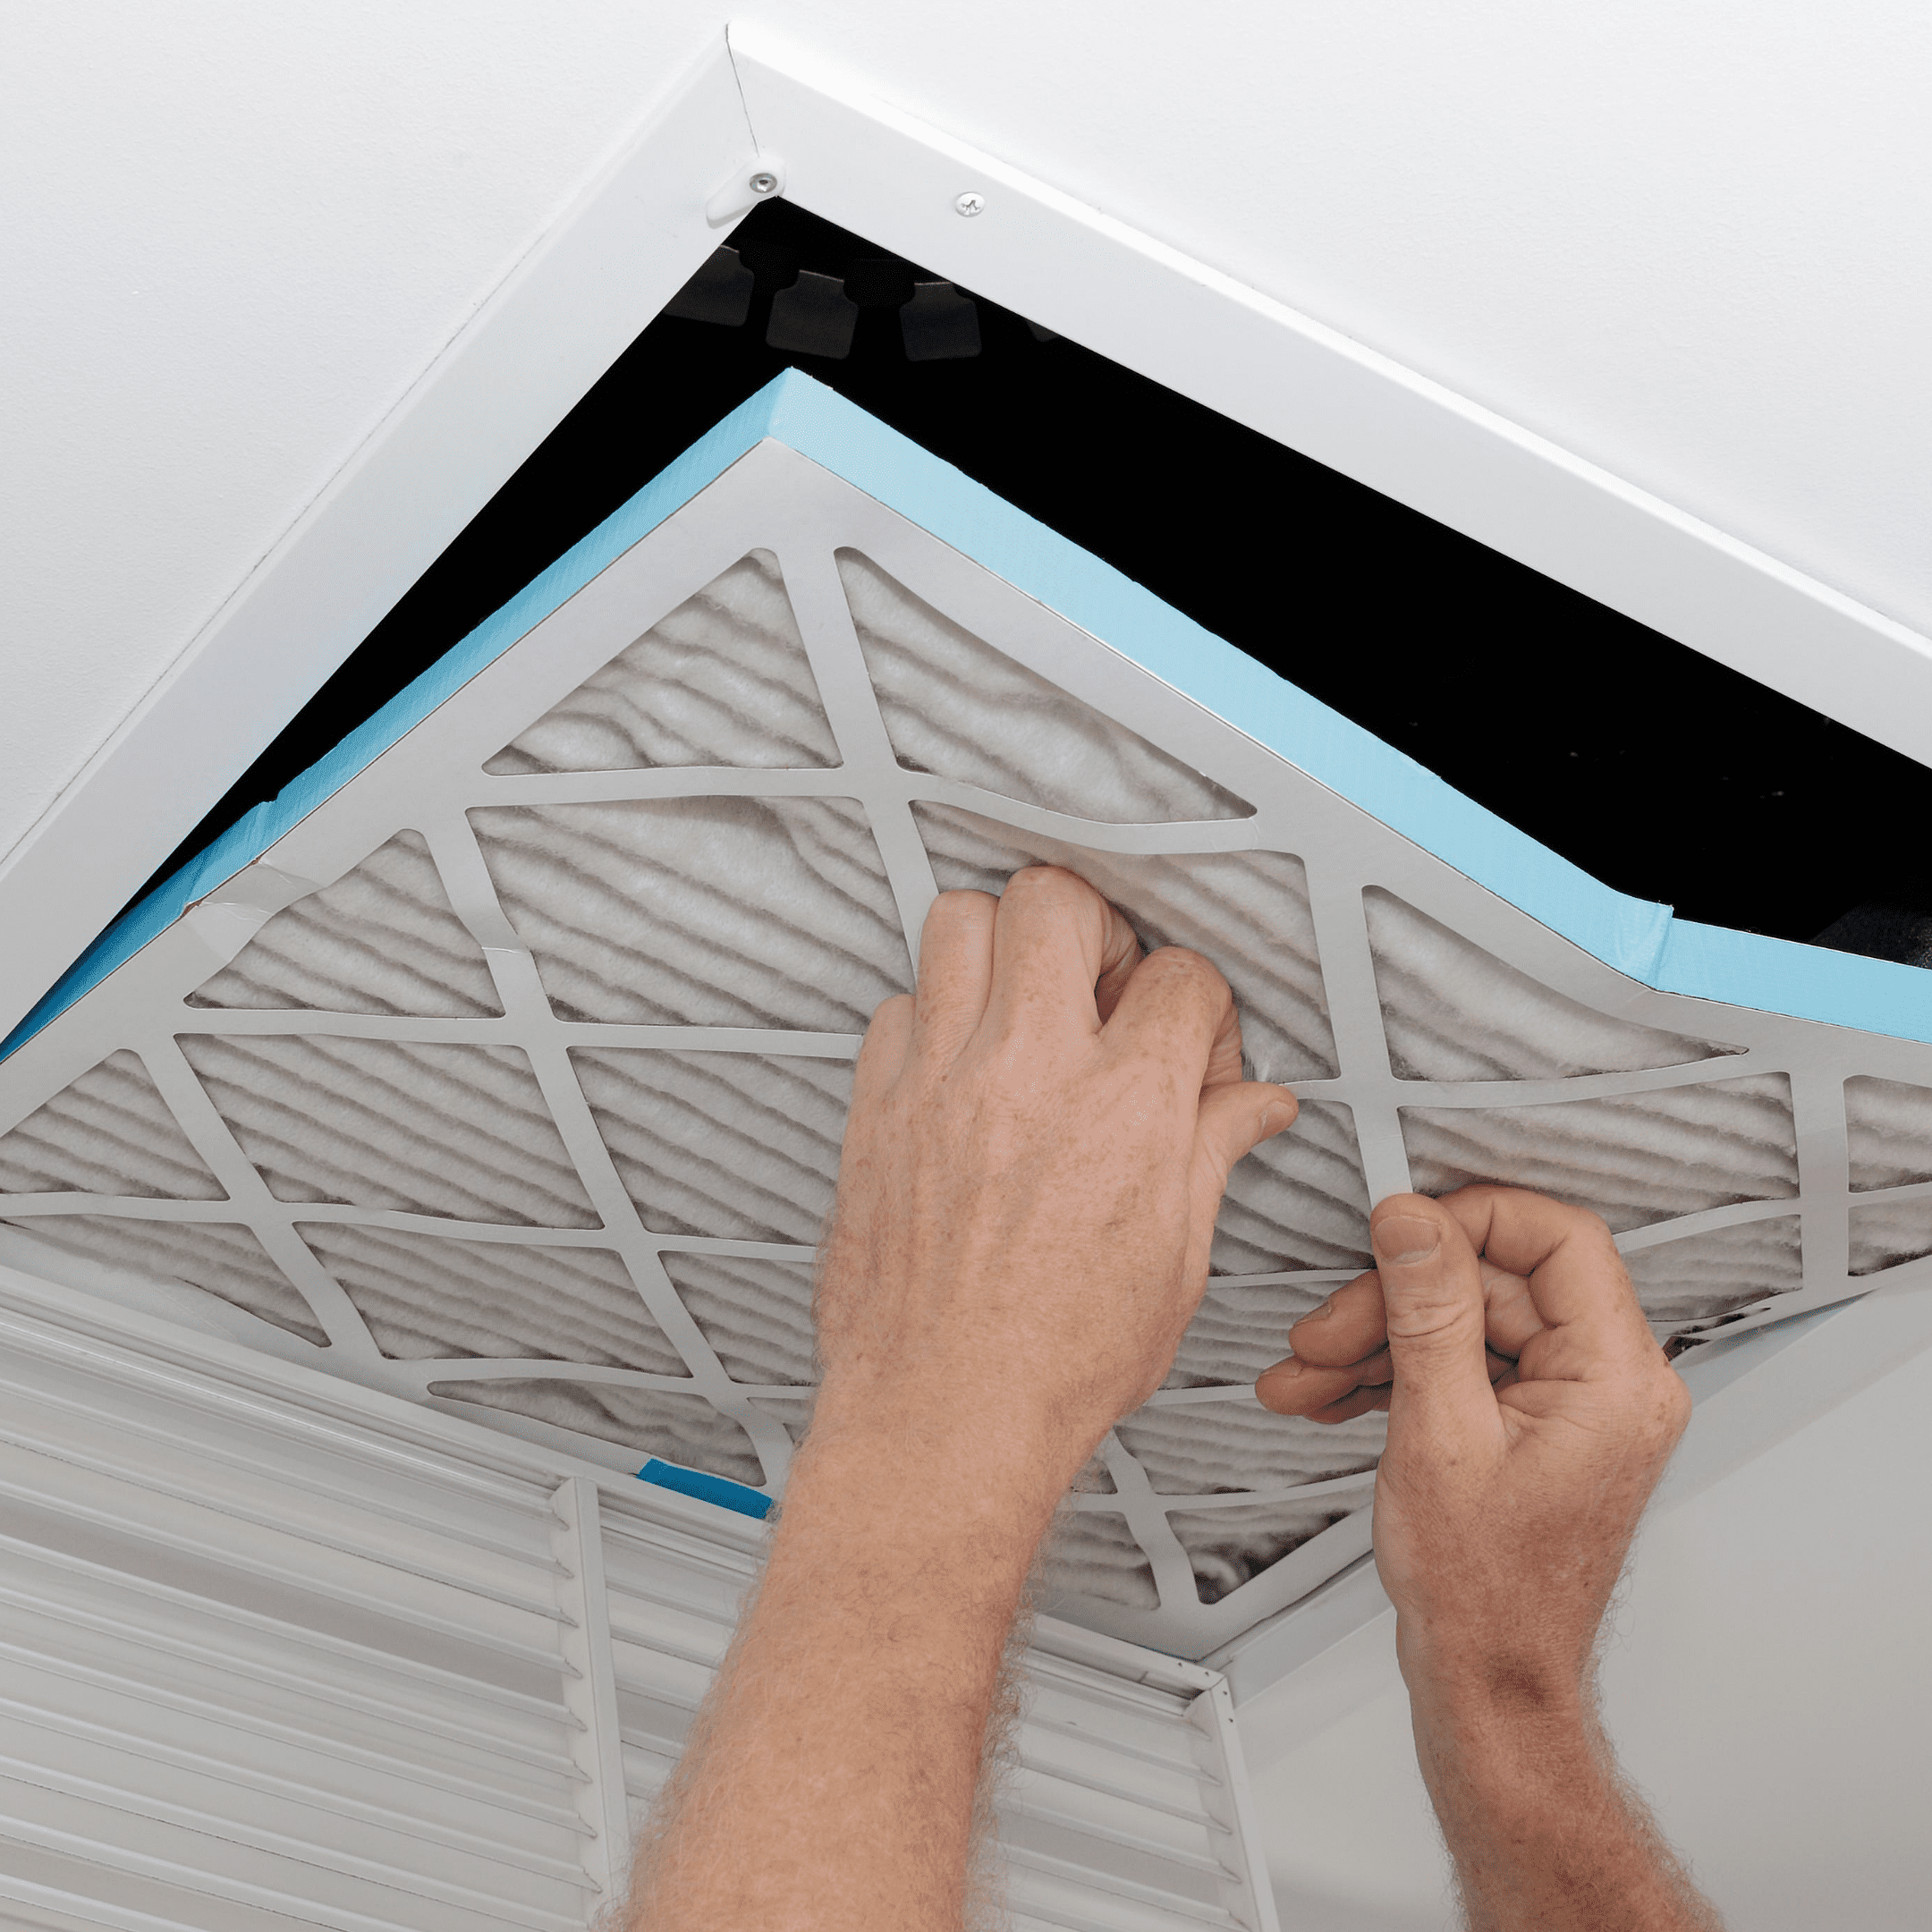 Regularly change HVAC Air filter to improve indoor air quality in home office